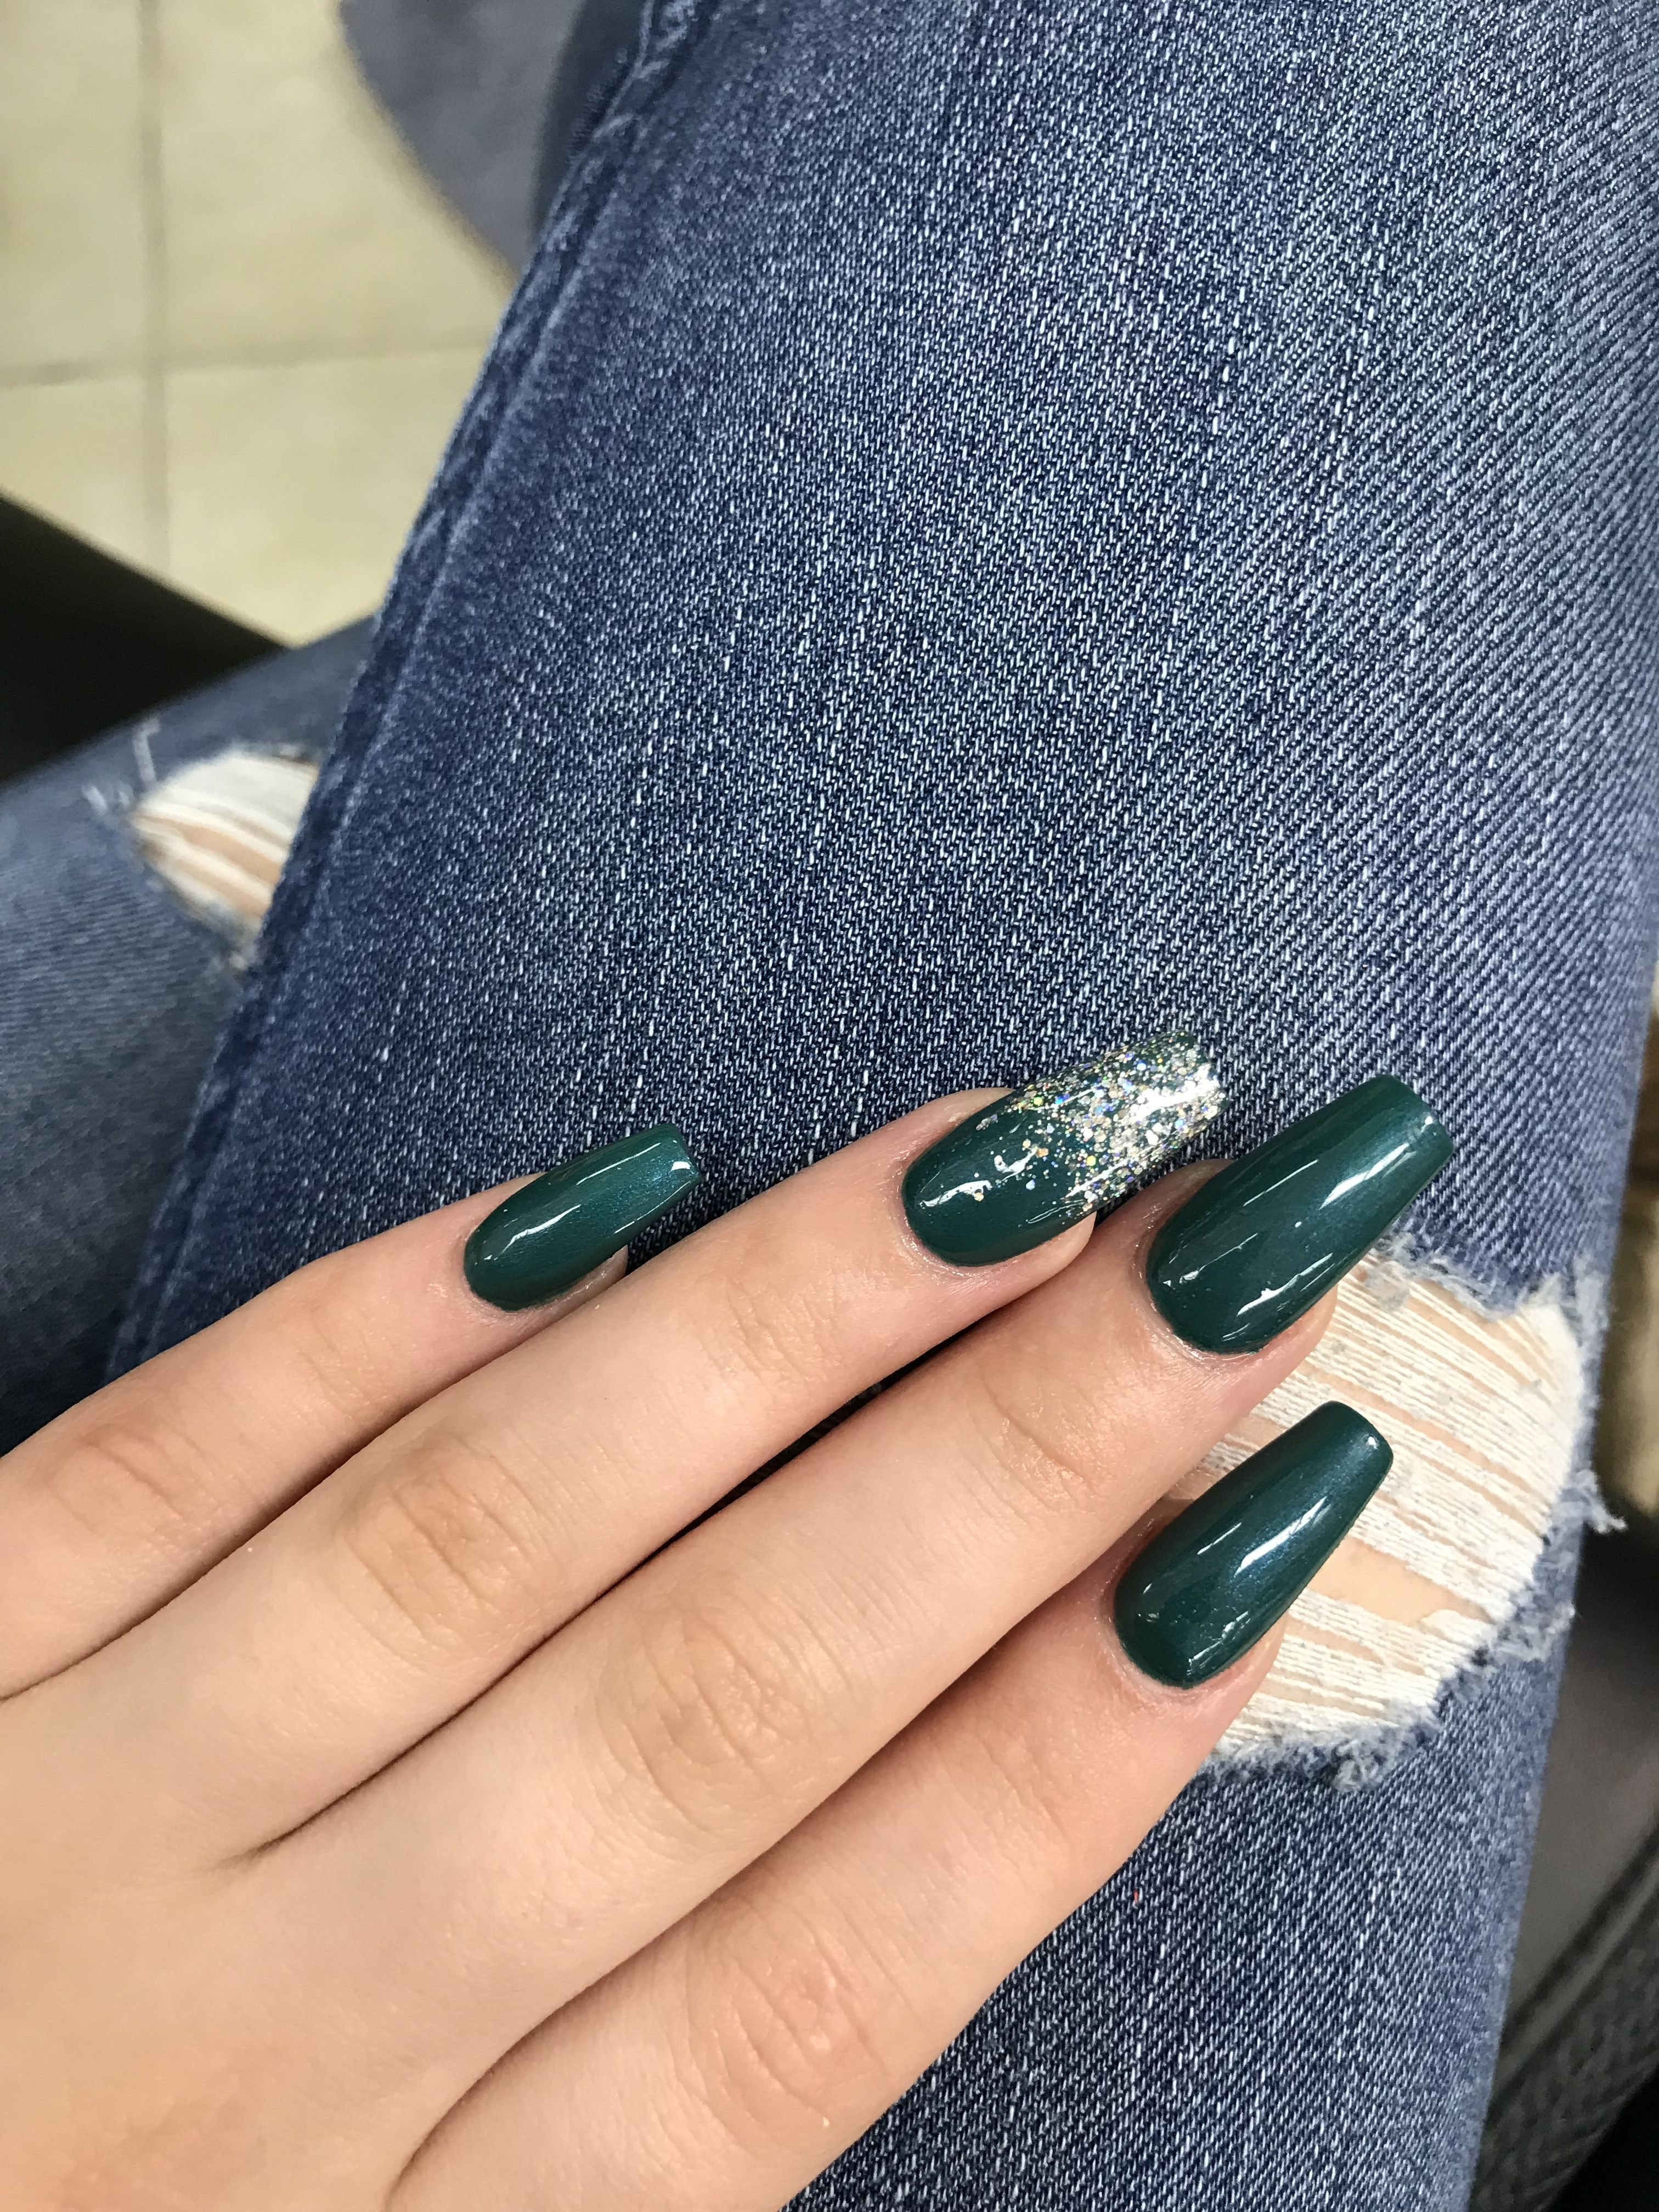 Coffin Acrylic Nails Emerald Green With Sparkle Green Acrylic Nails Green Nail Designs Gold Acrylic Nails